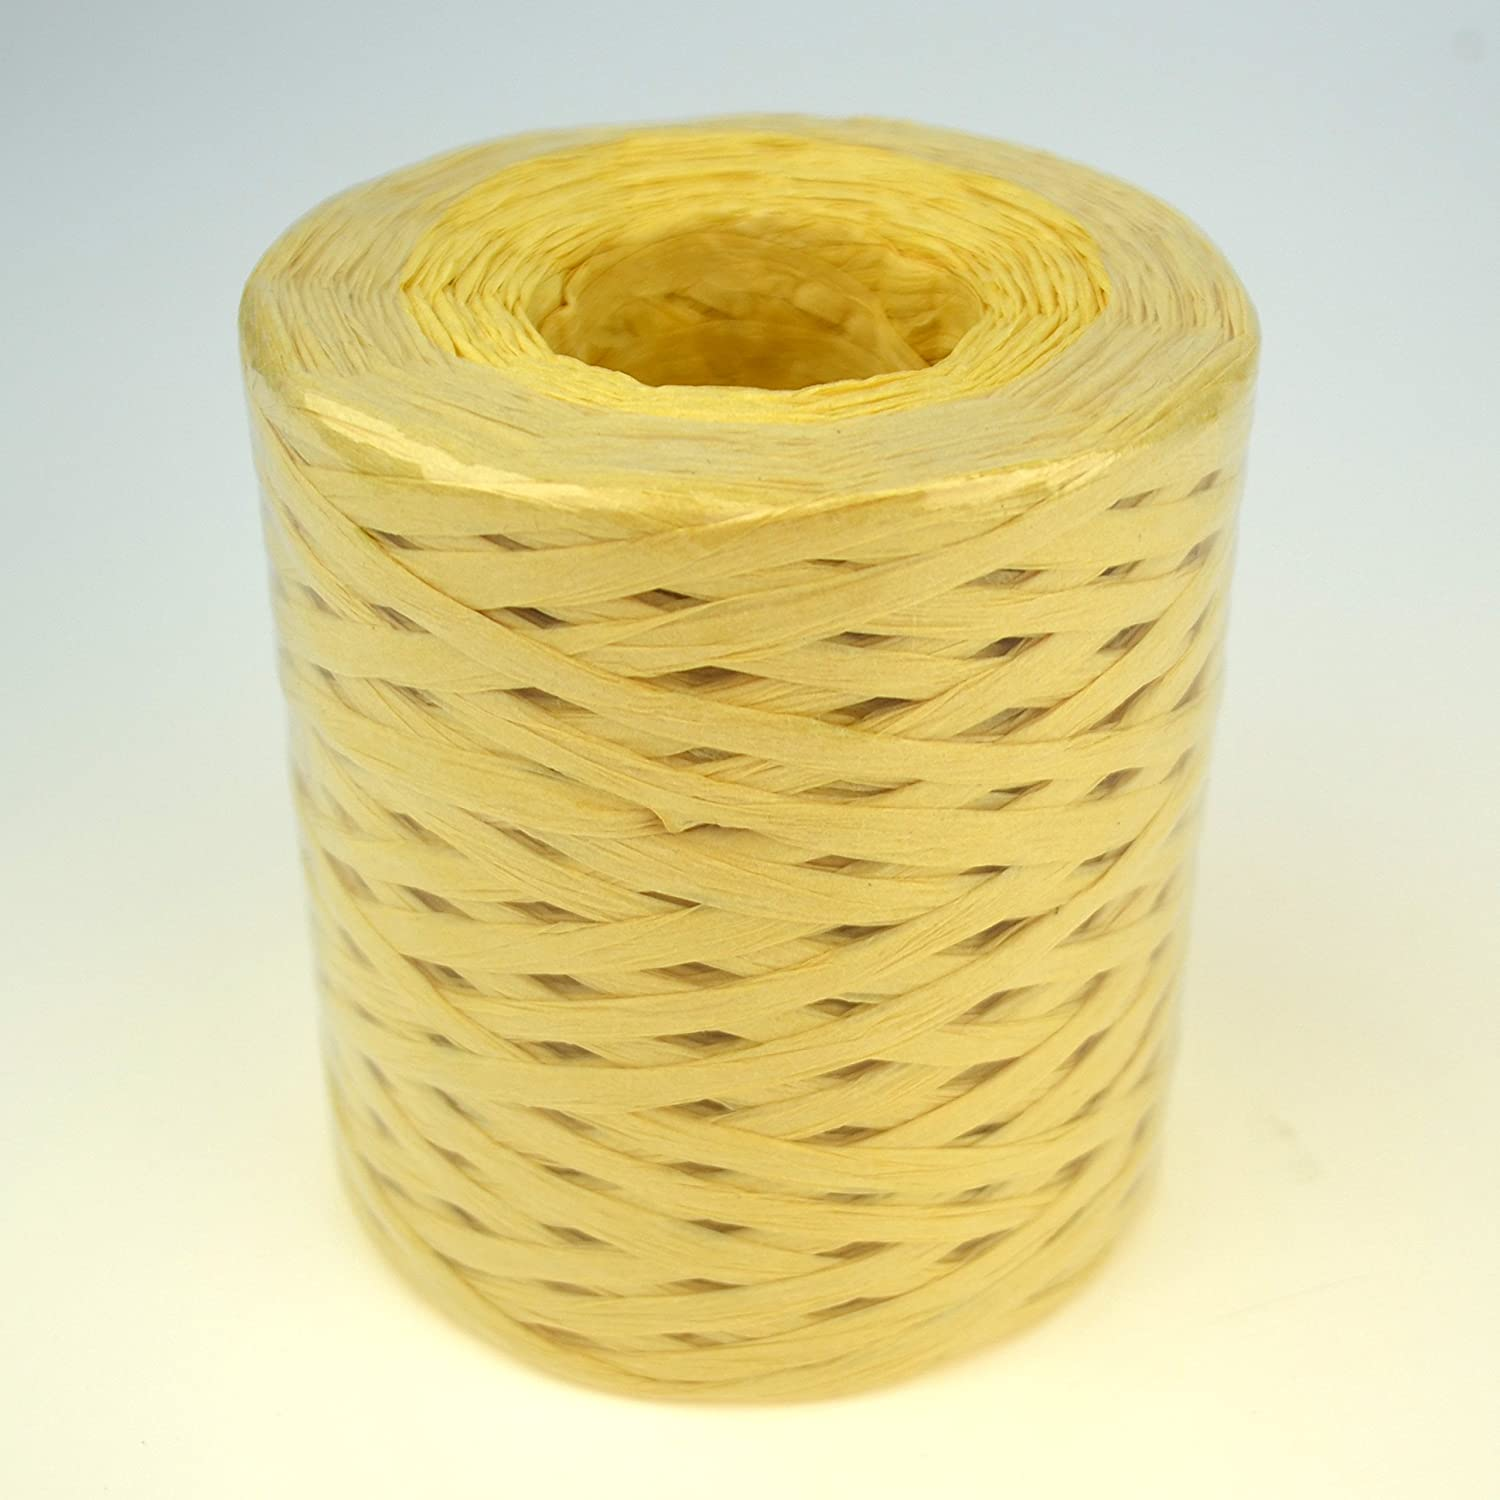 Light Blue Color Star Packing Paper Twine 218 Yard Giant Roll Light Blue Matte Paper Ribbon 93 Colors Available 3//16 Inch Width Paper Raffia Roll